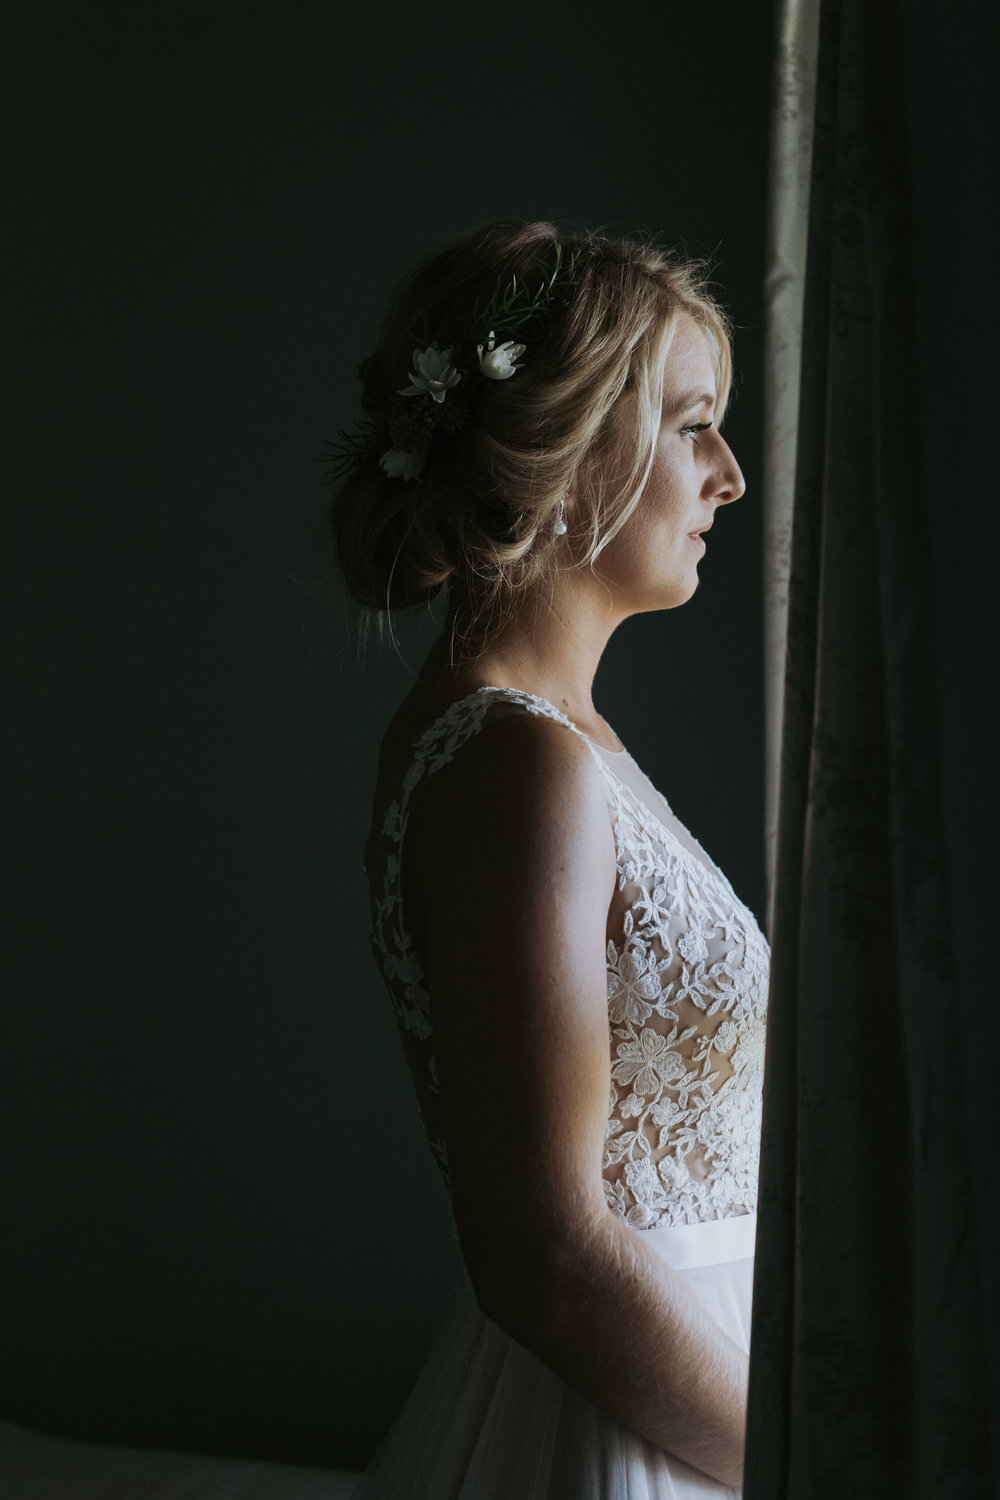 Bride in window photo. Candid wedding photography on the South Coast